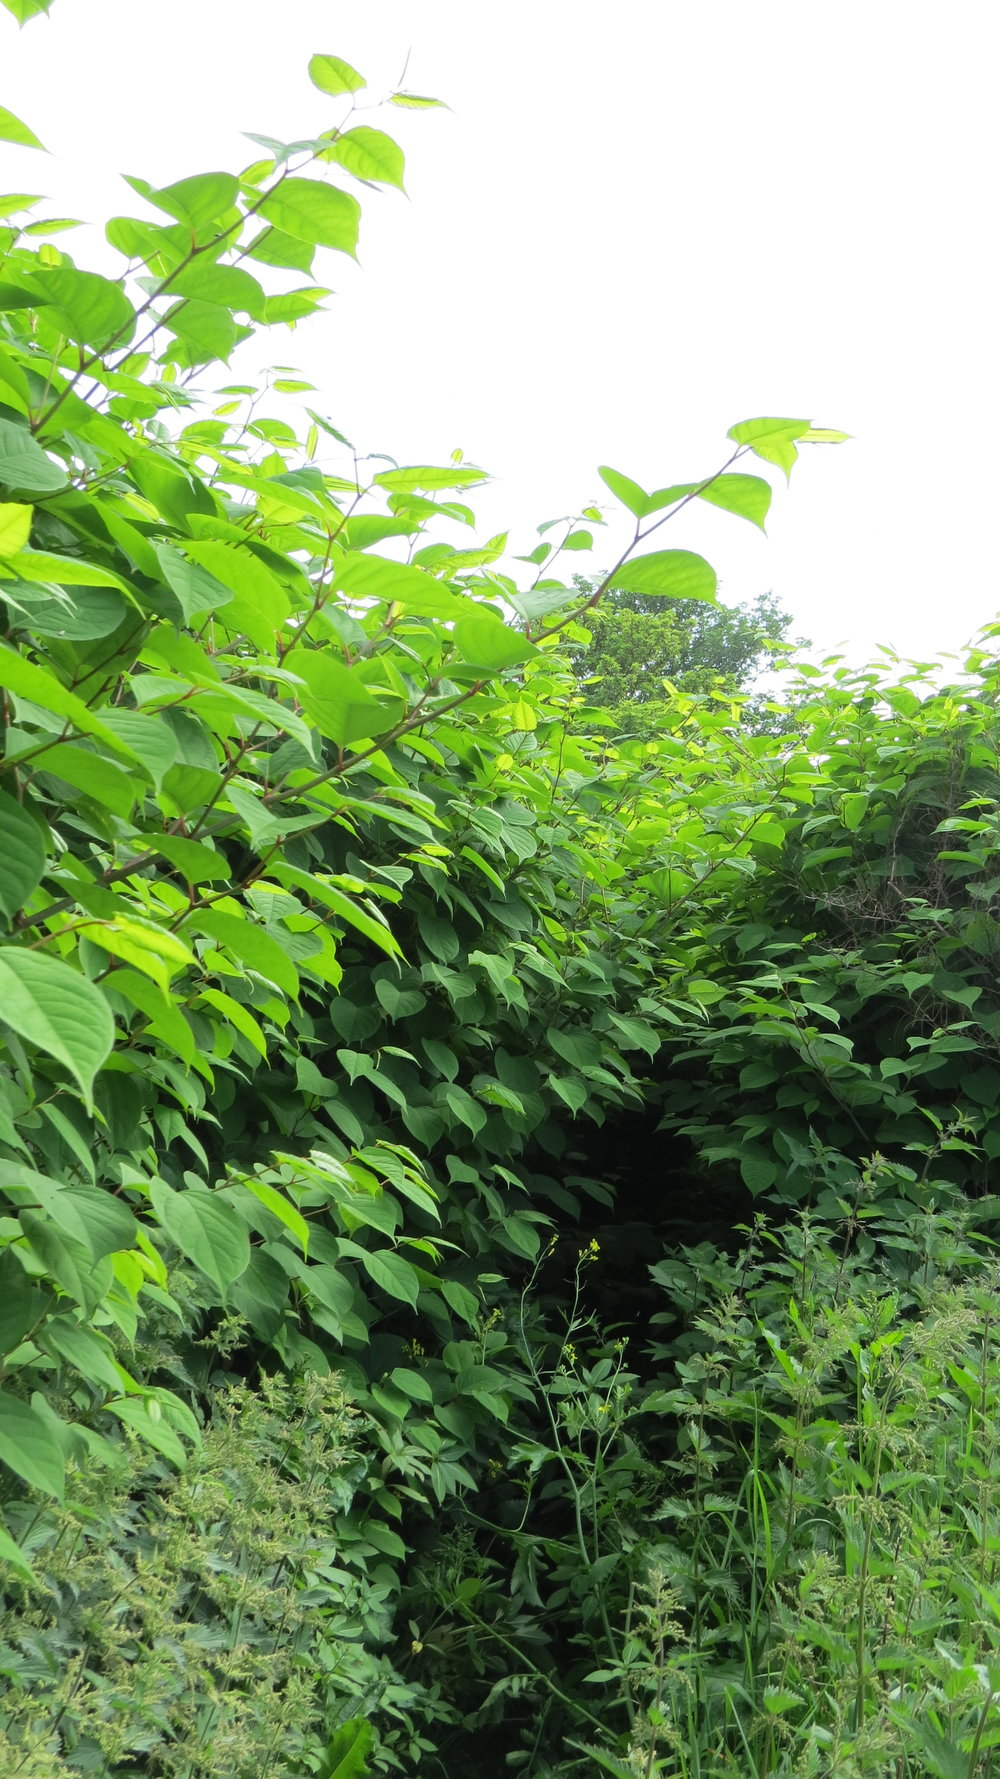 Japanese Knotweed Blocking my Way